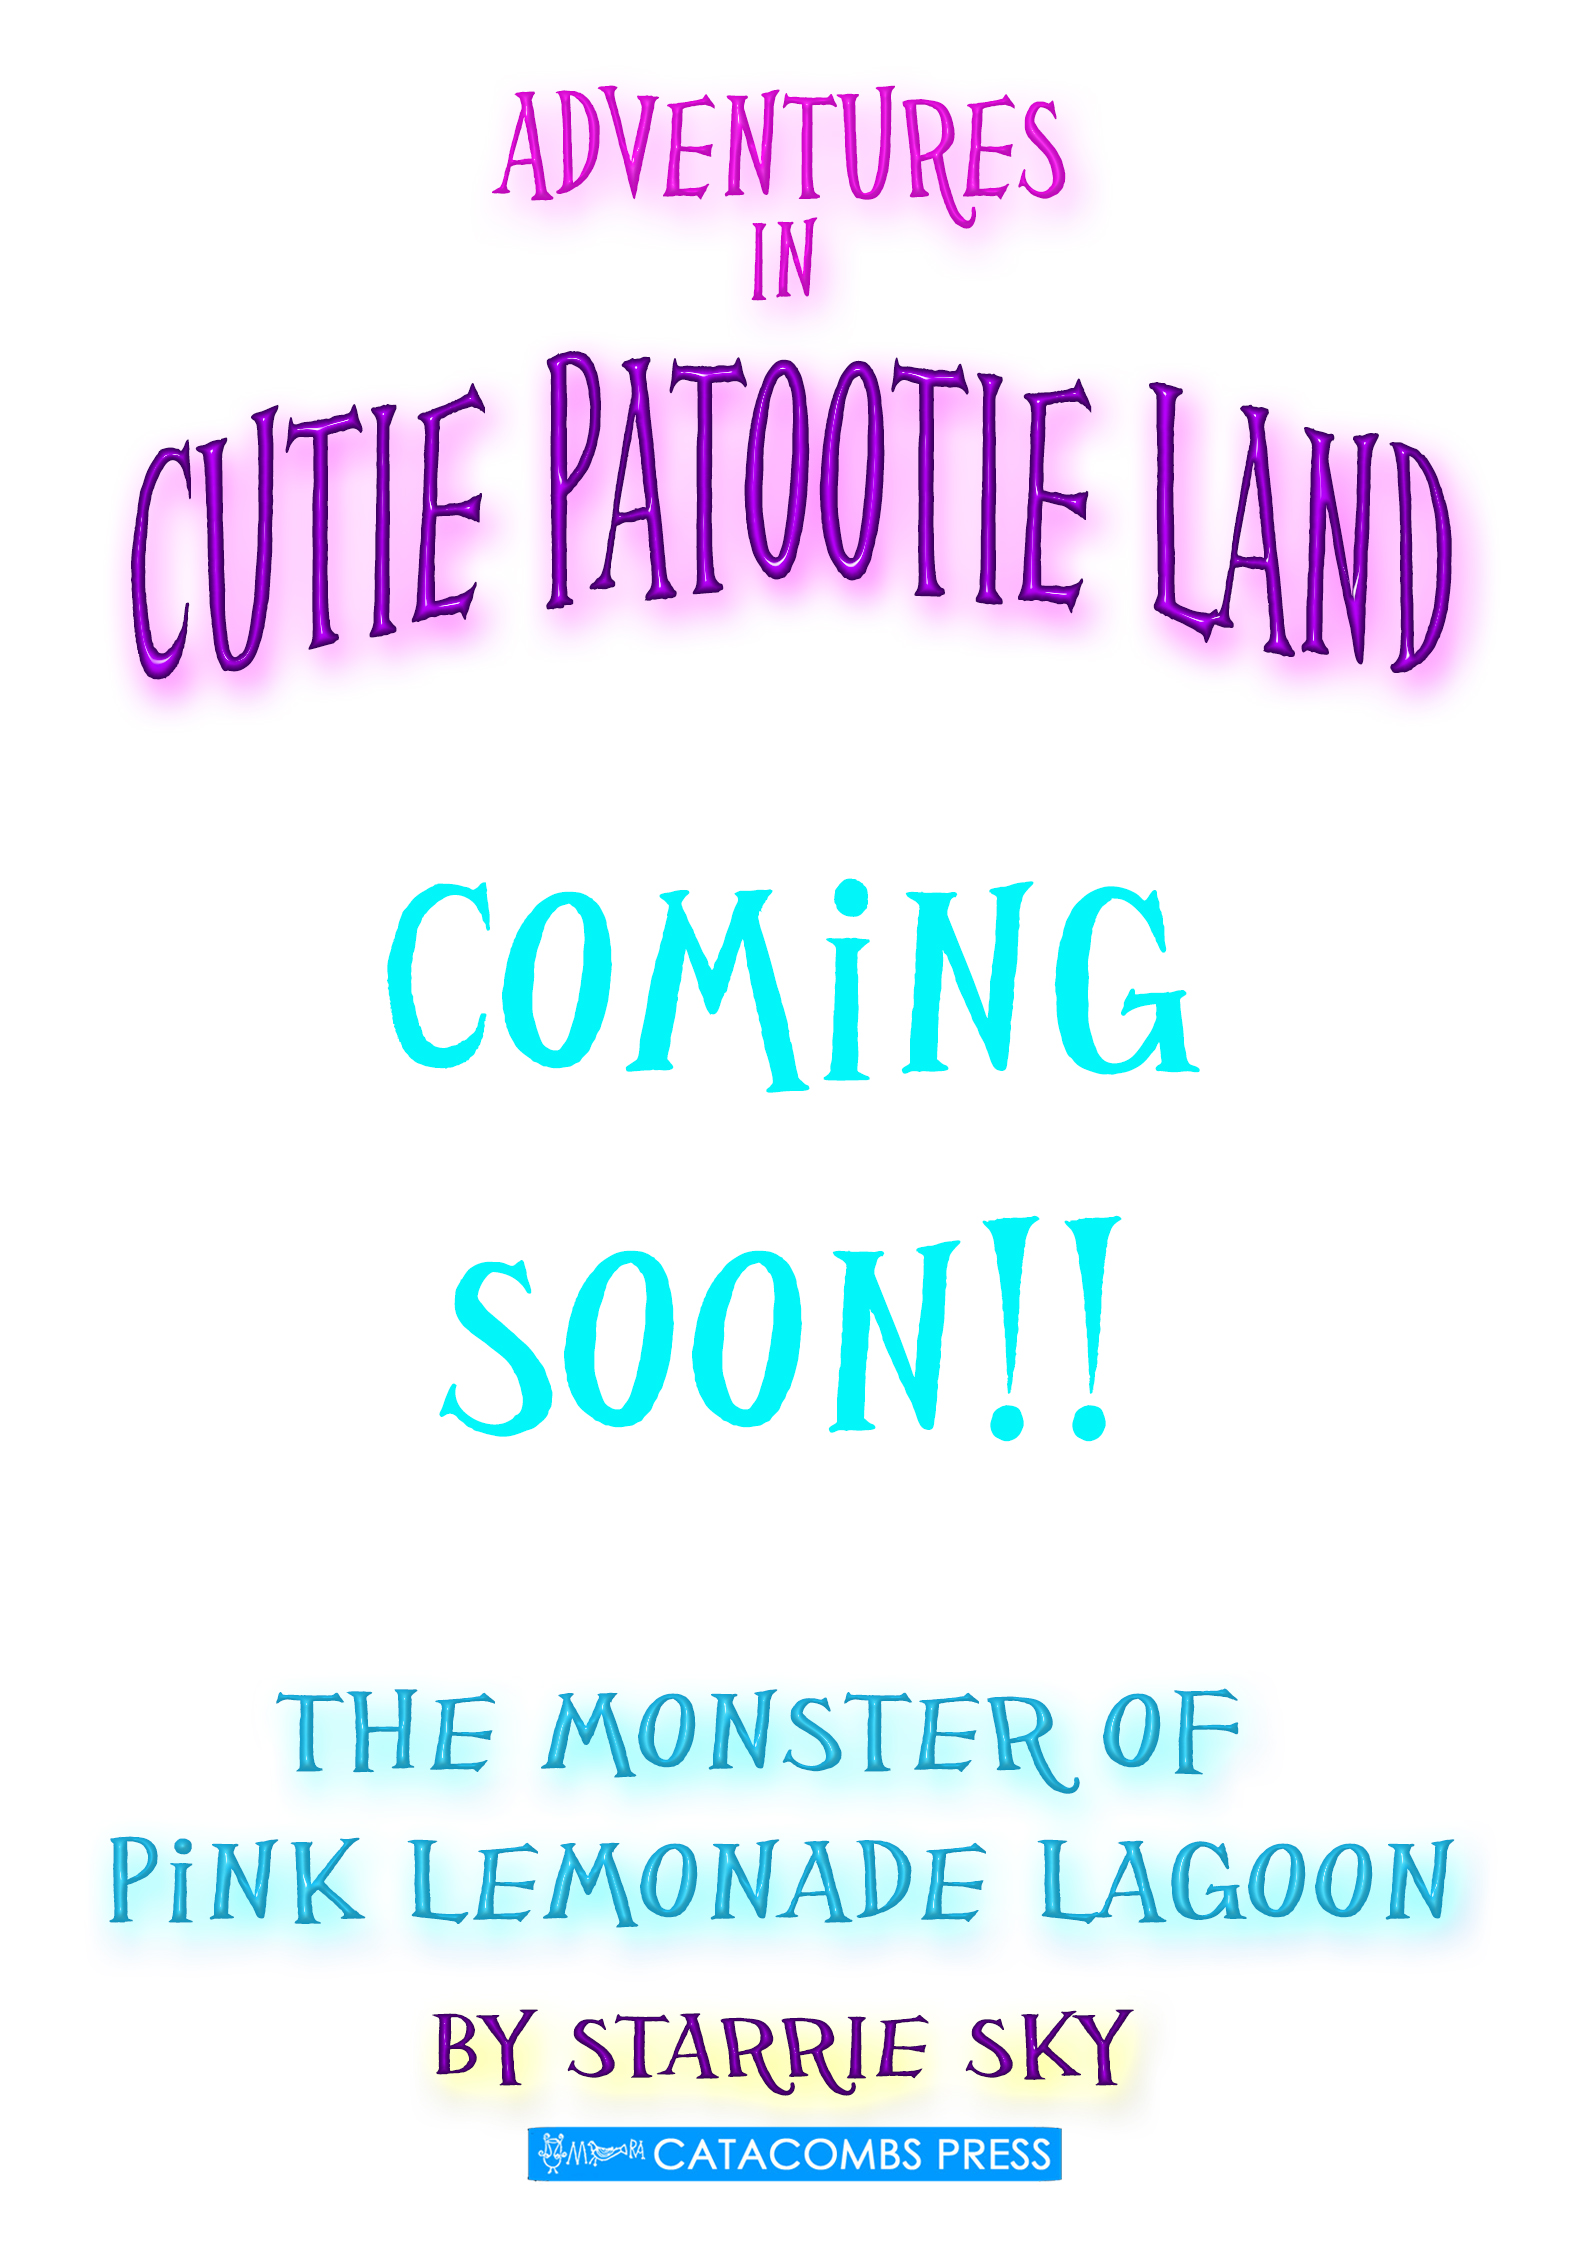 Adventures in Cutie Patootie Land and the Monster of Pink Lemonade Lagoon